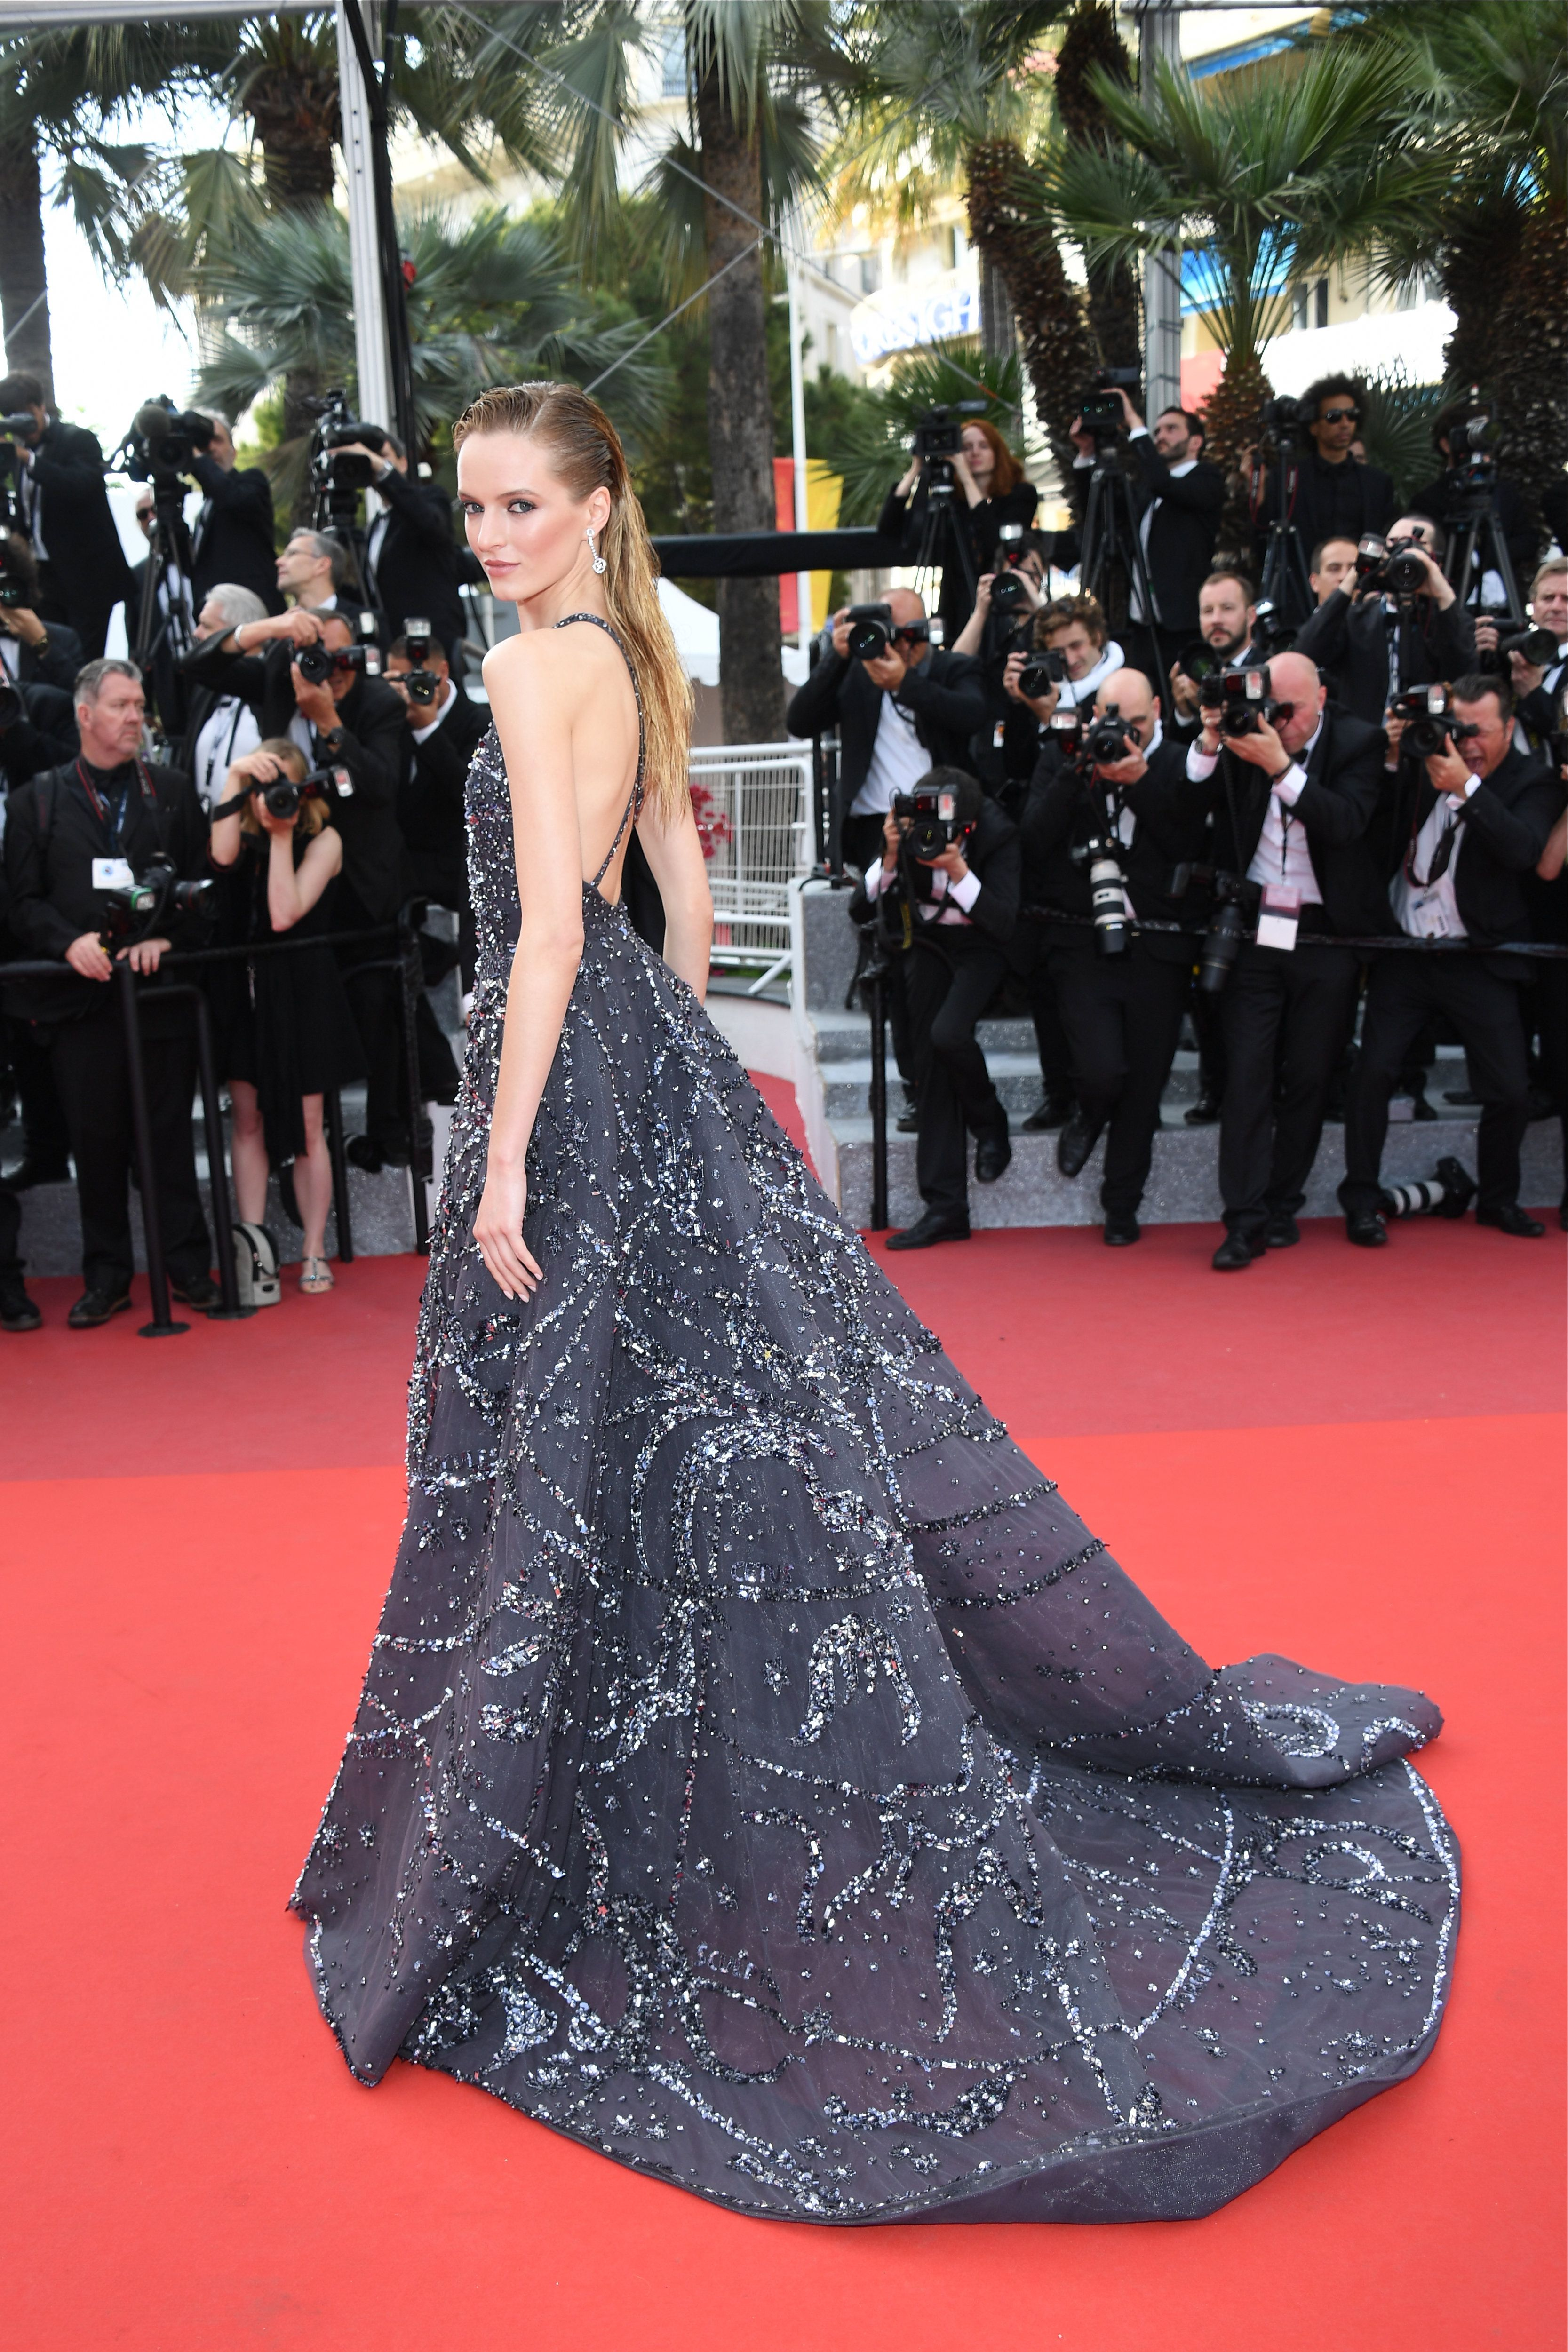 a4c63f3bc4 The Best Celeb Looks from the Cannes Red Carpet